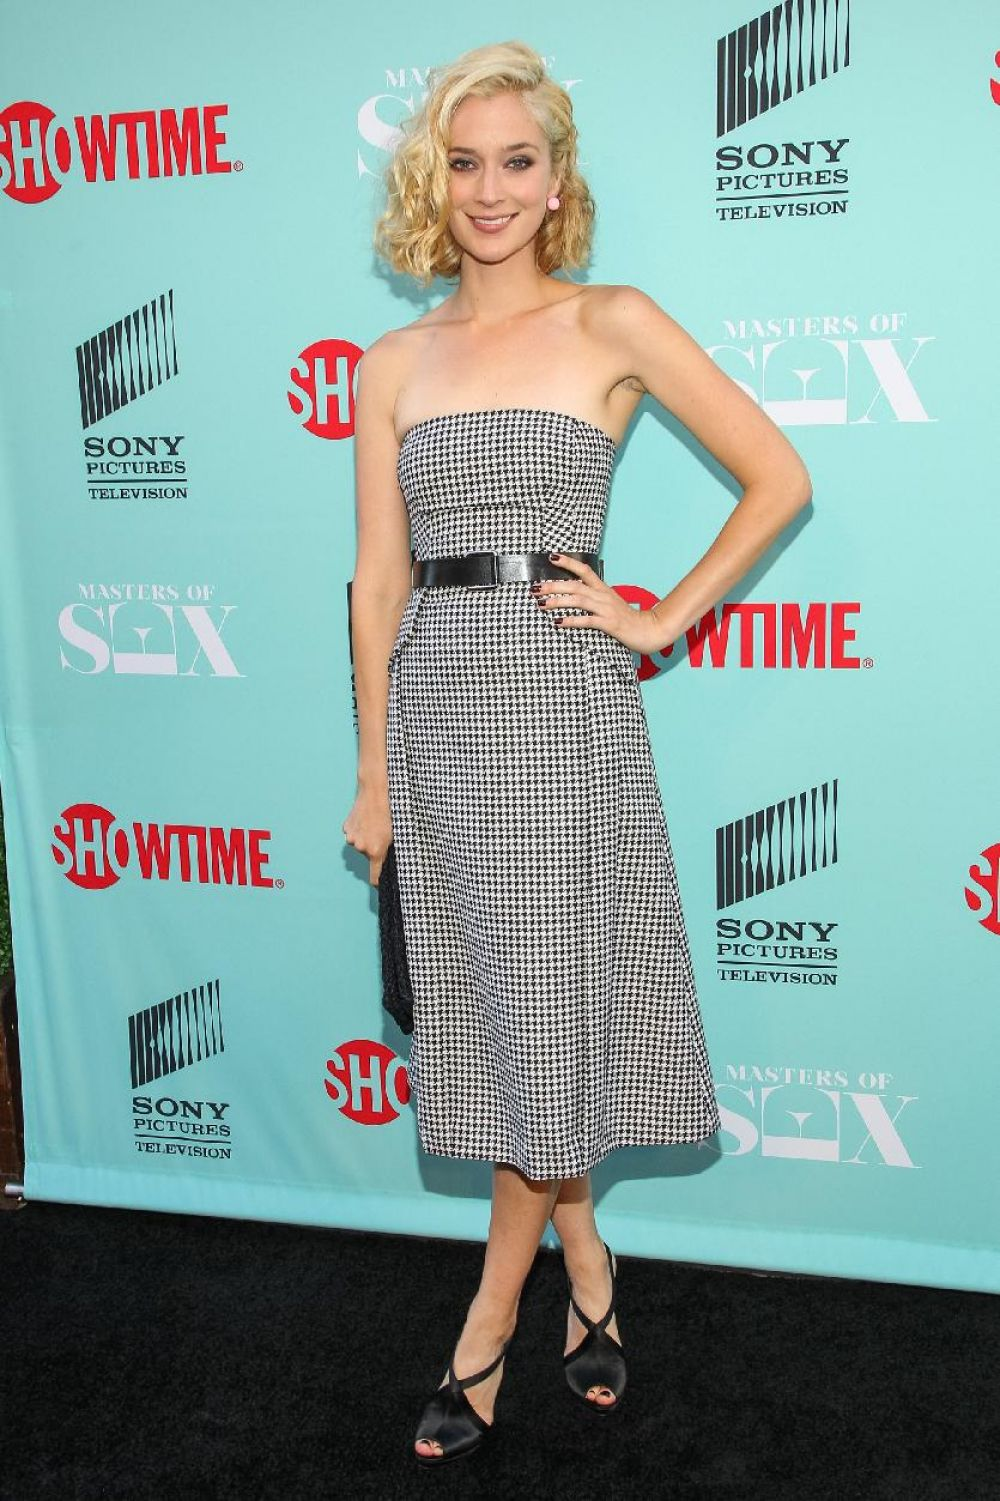 CAITLIN FITZGERALD at Masters of S.x Season 2 2014 TCA Summer Tour